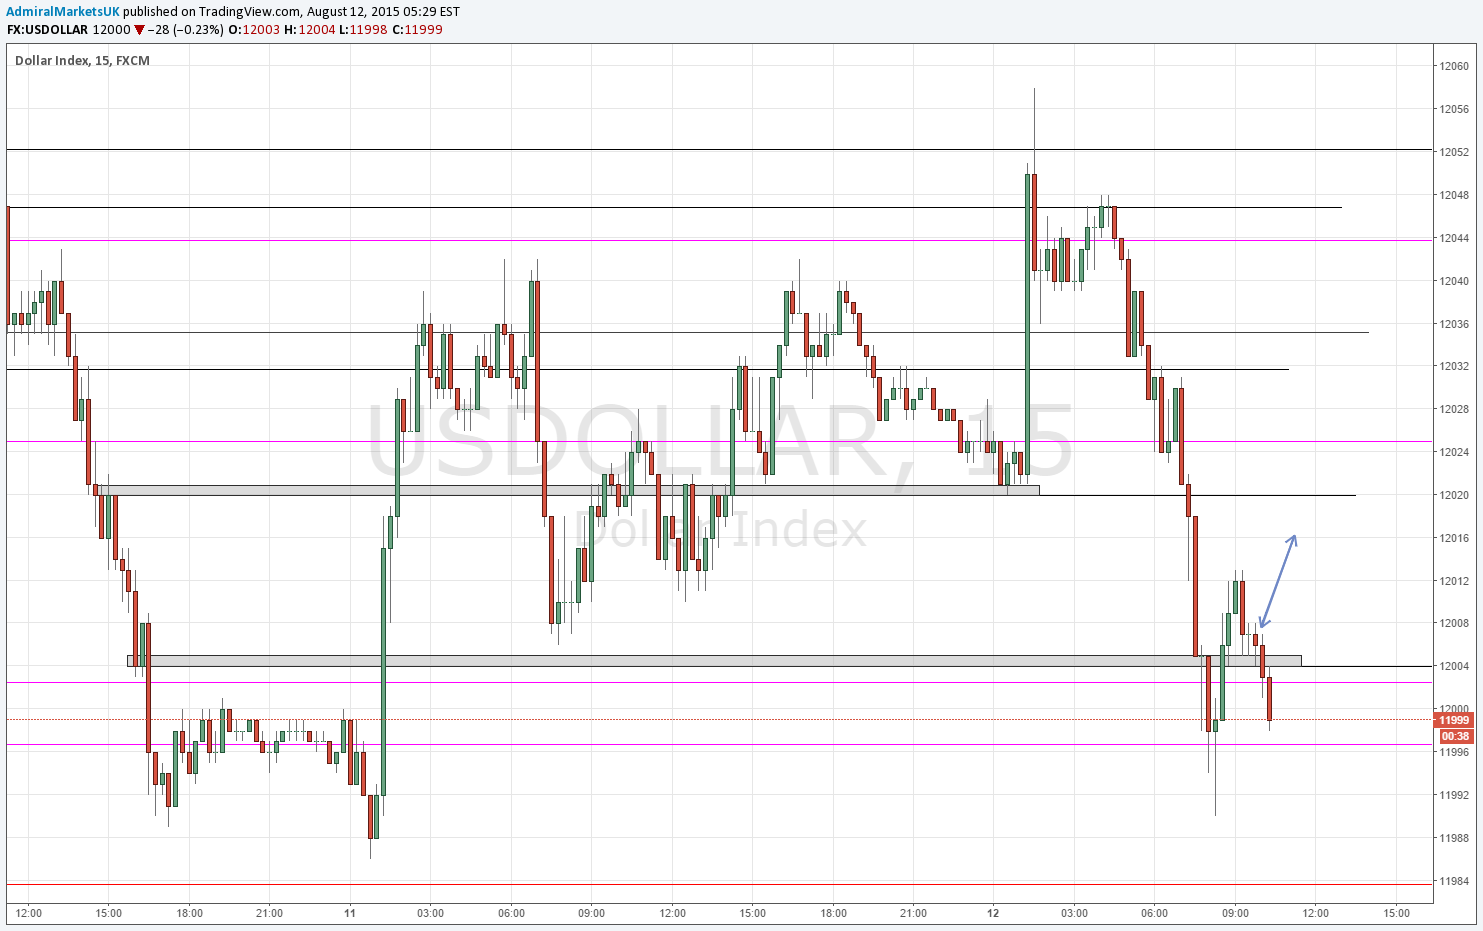 Spotting accumulation candles and orderblocks for FX:USDOLLAR by